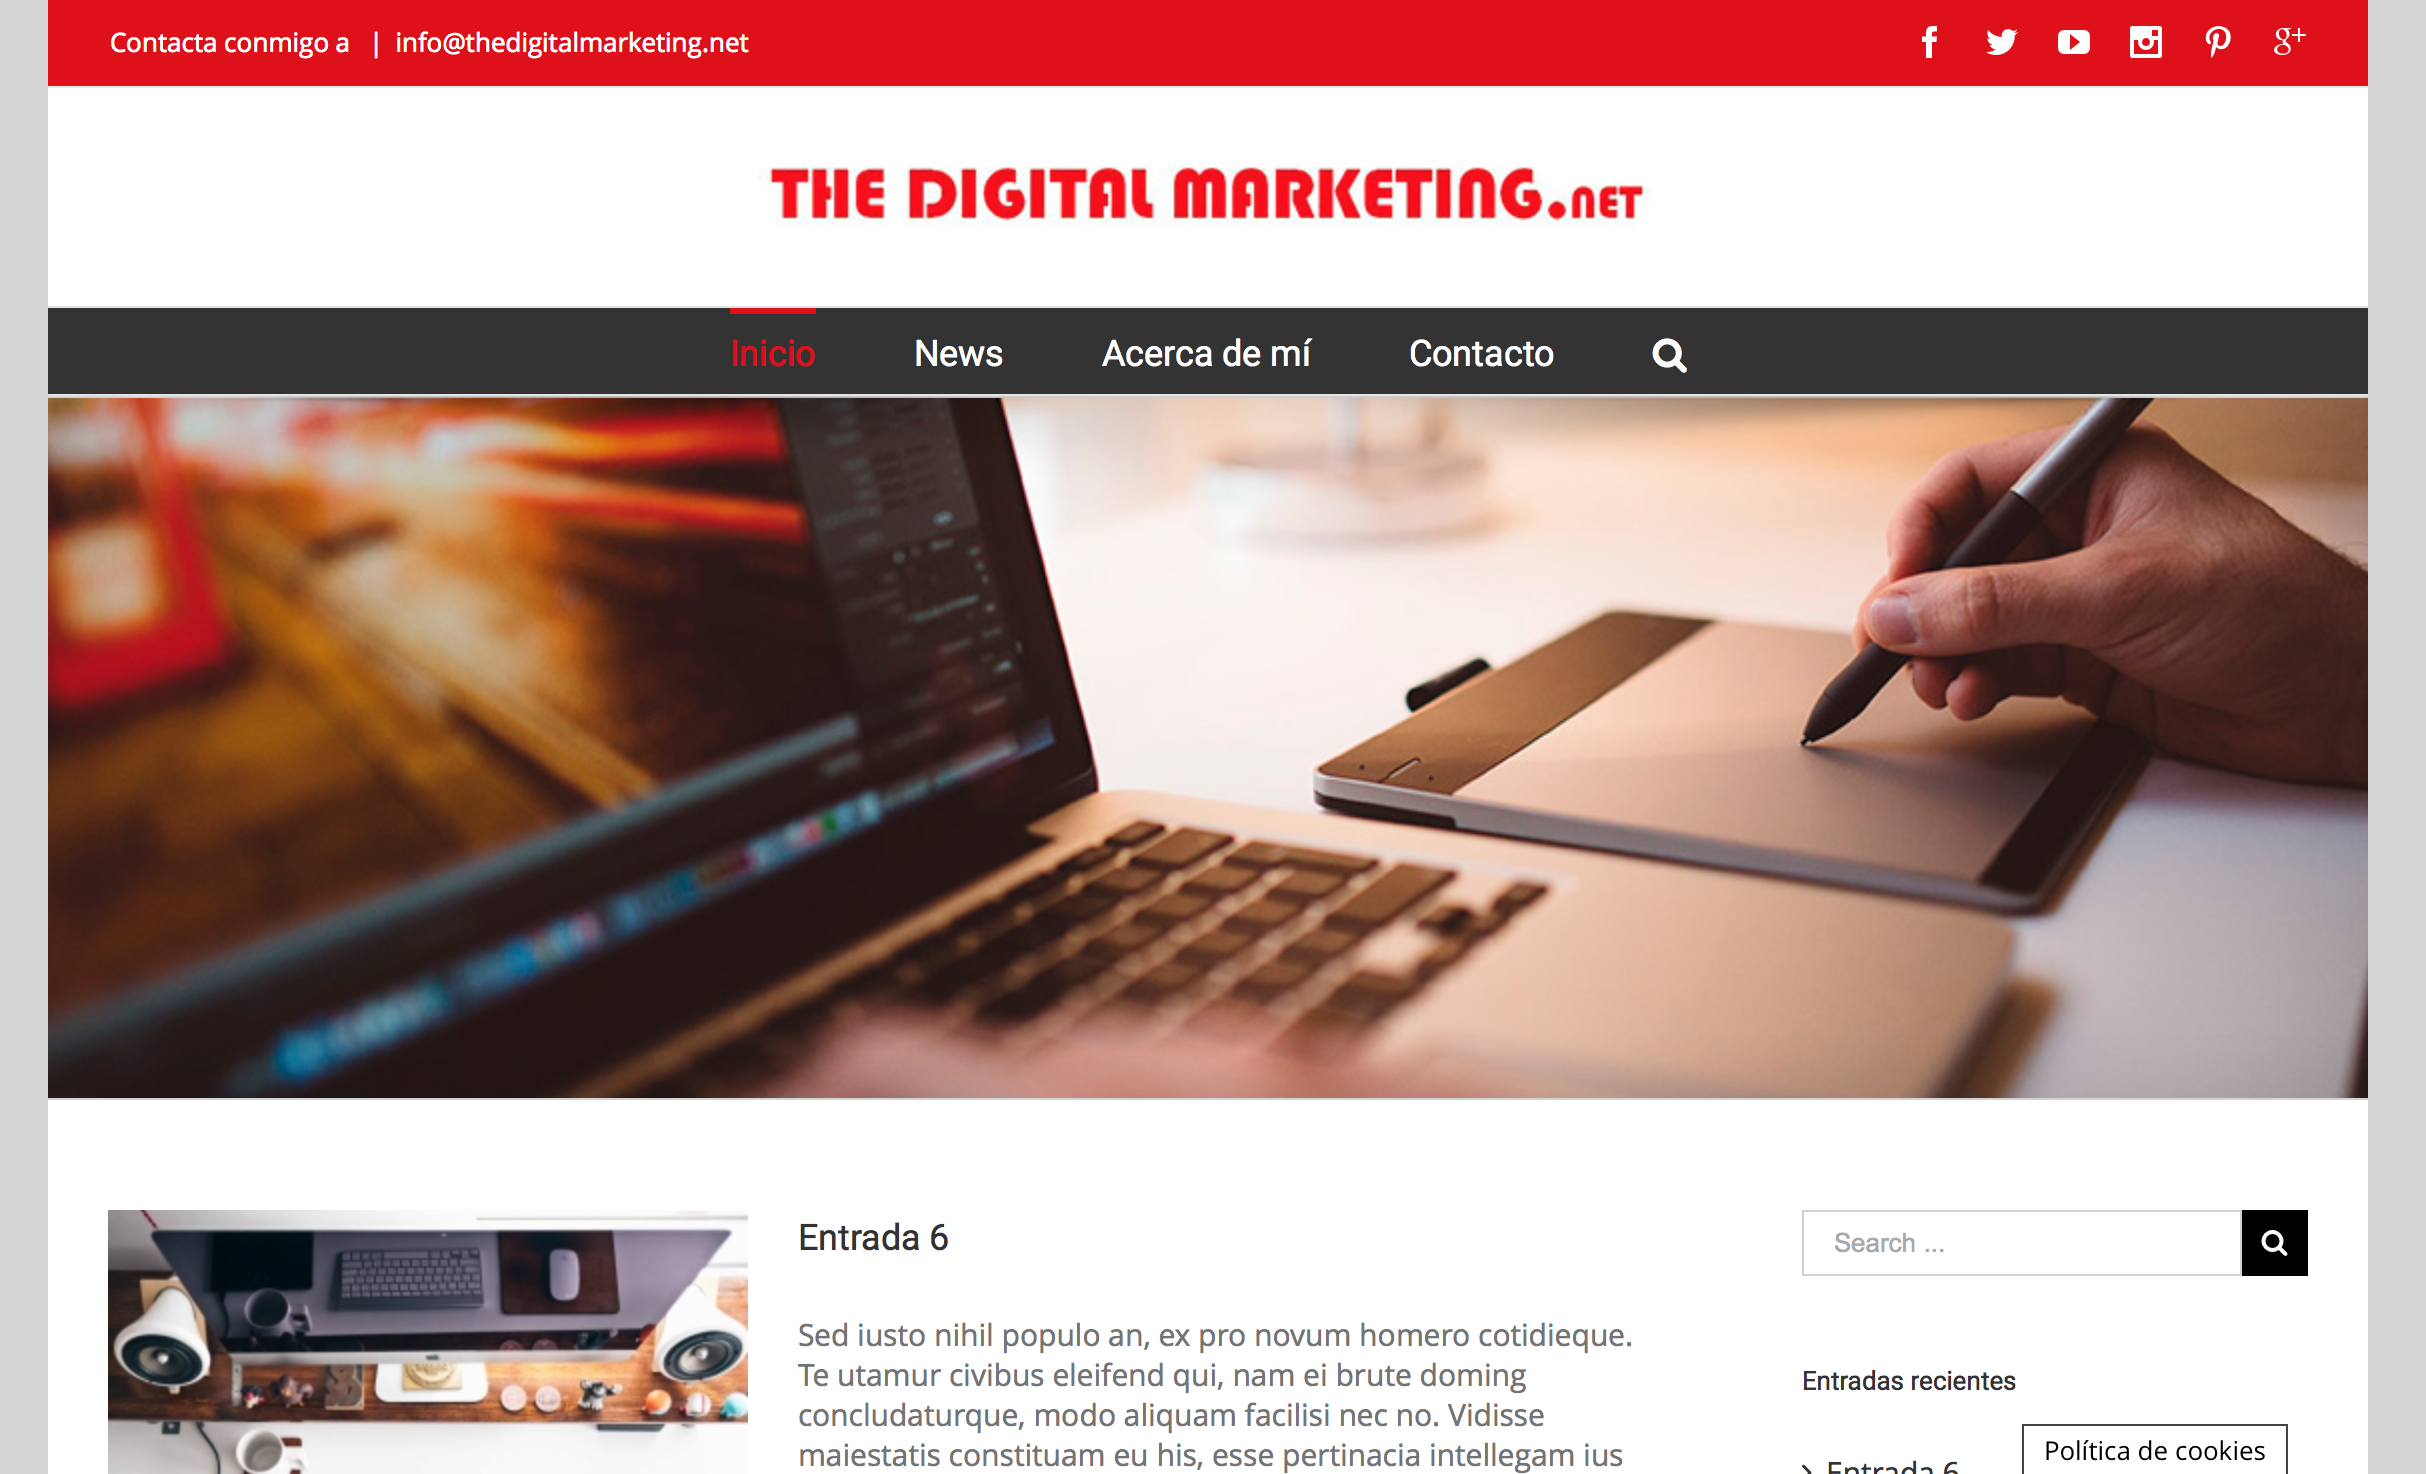 The digital marketing